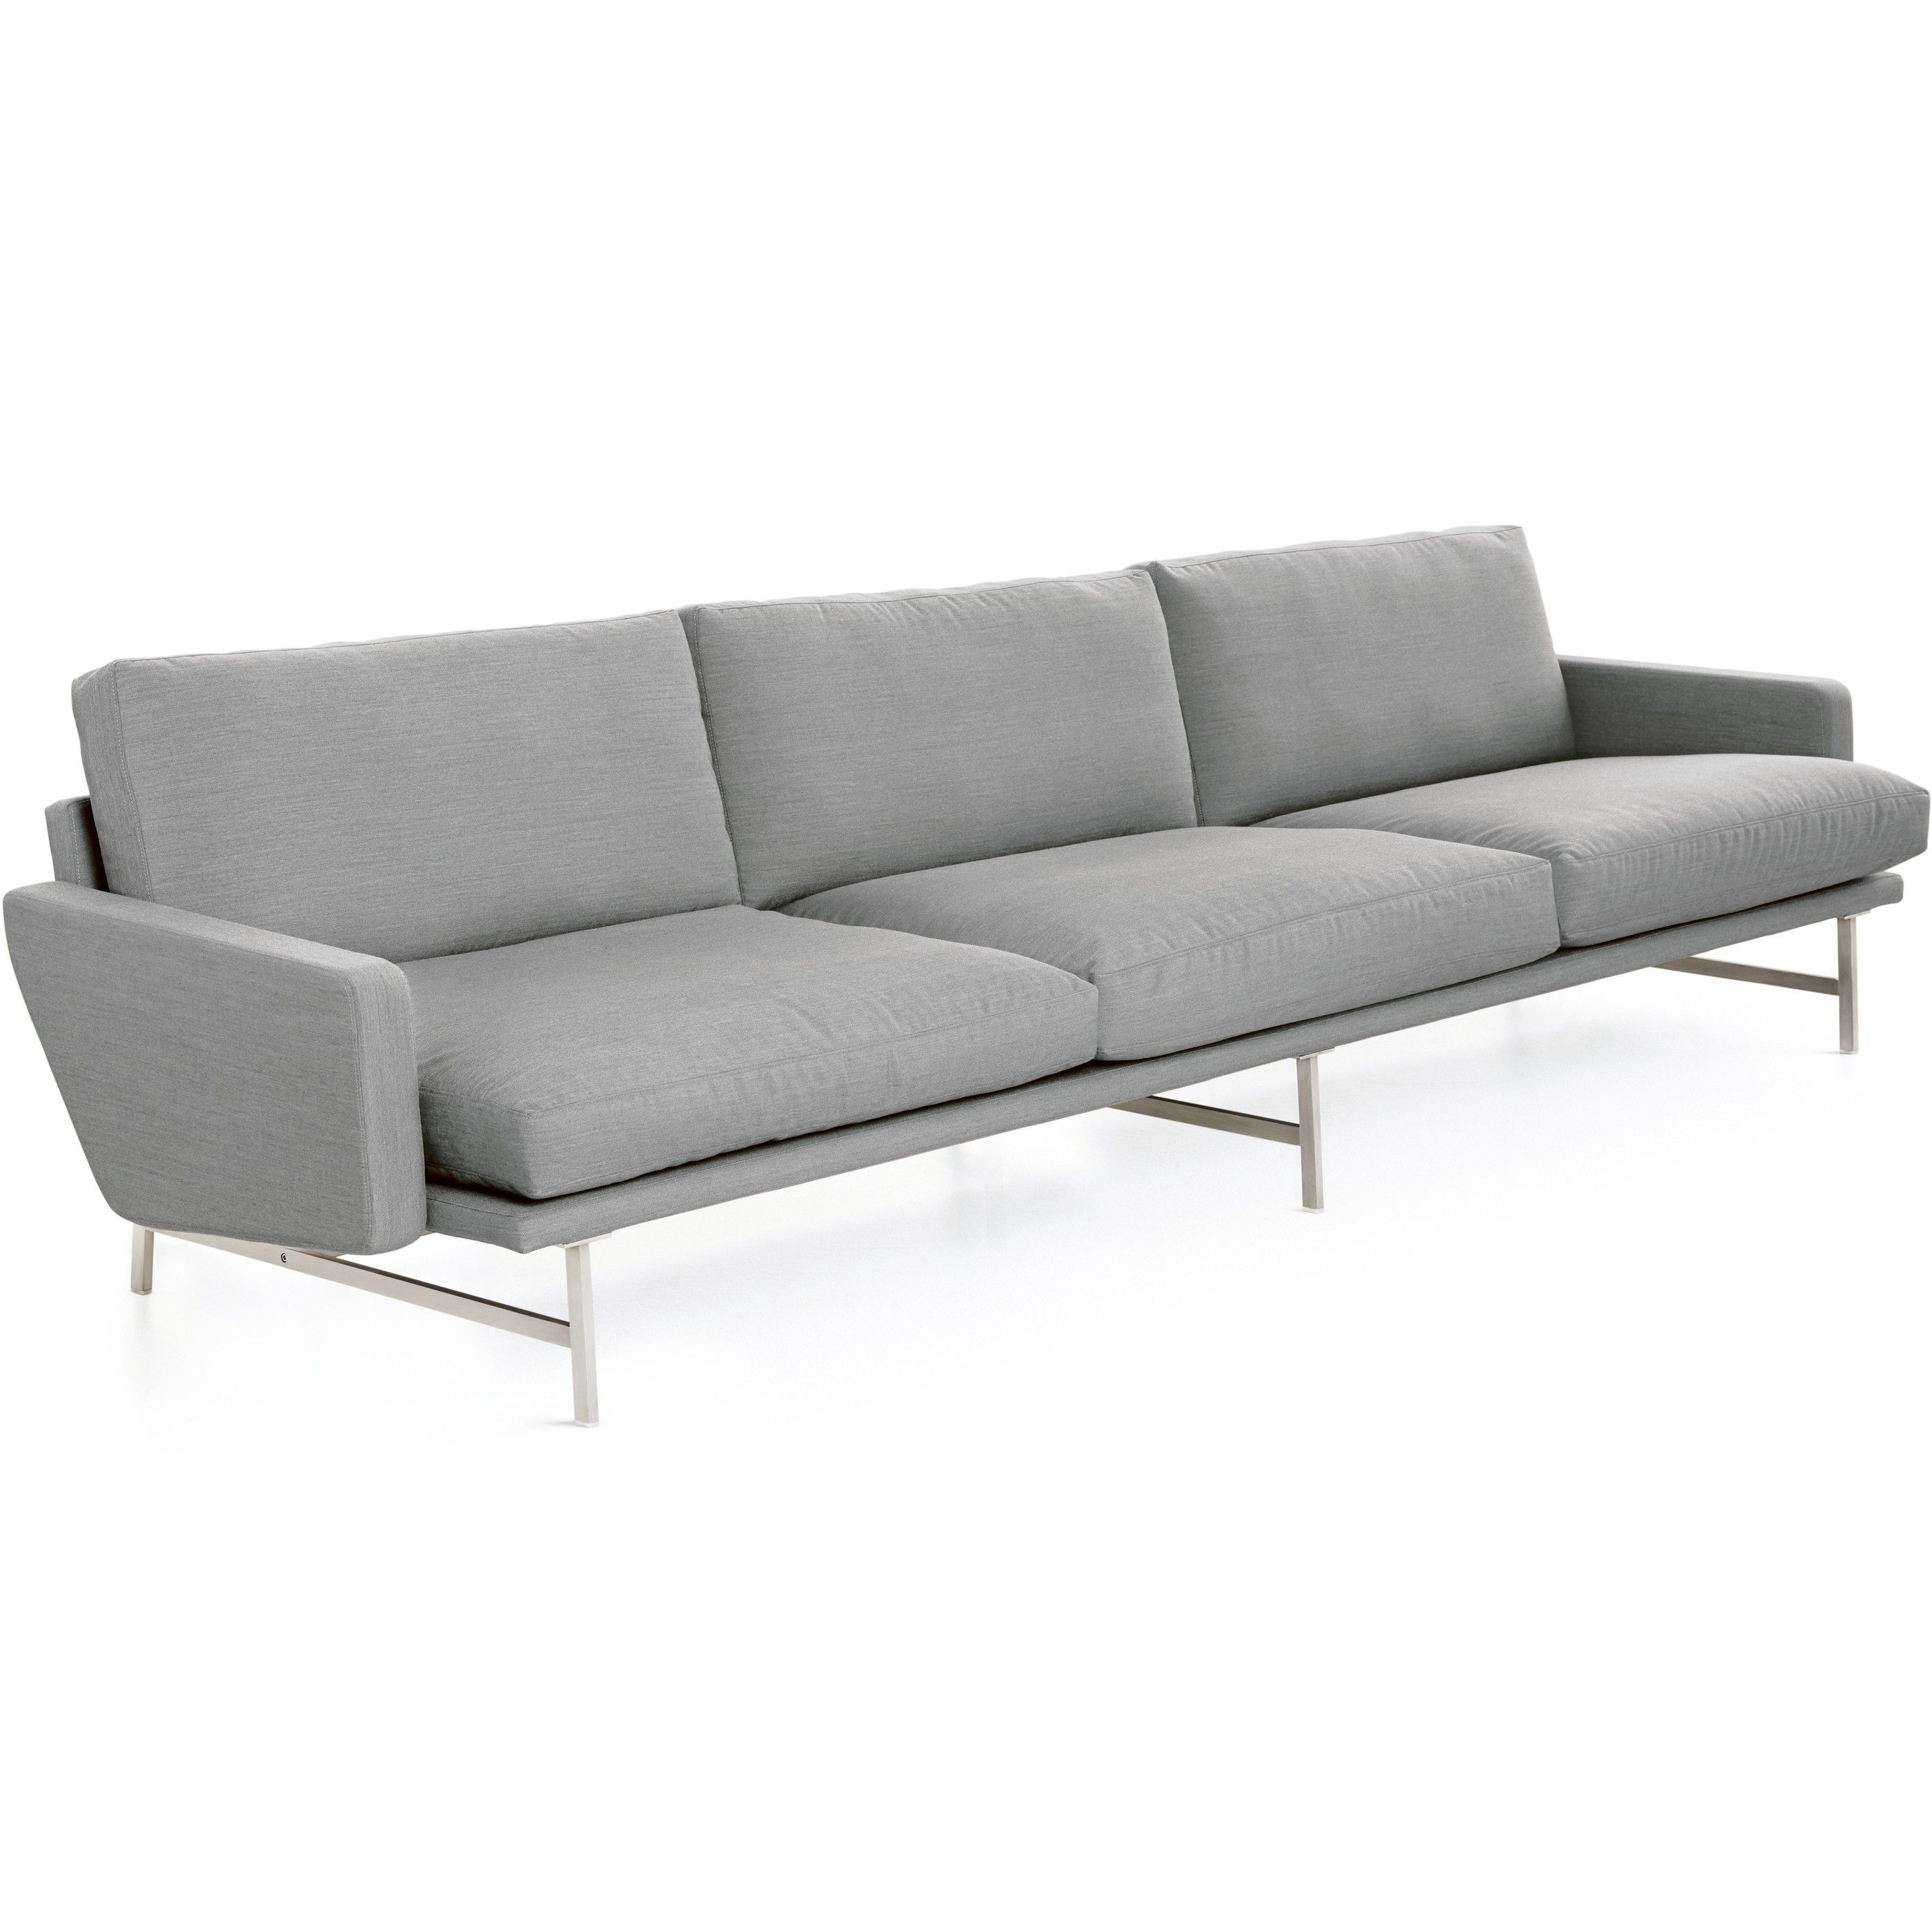 fritz hansen lissoni sofa bank 3 zits flinders verzendt gratis. Black Bedroom Furniture Sets. Home Design Ideas